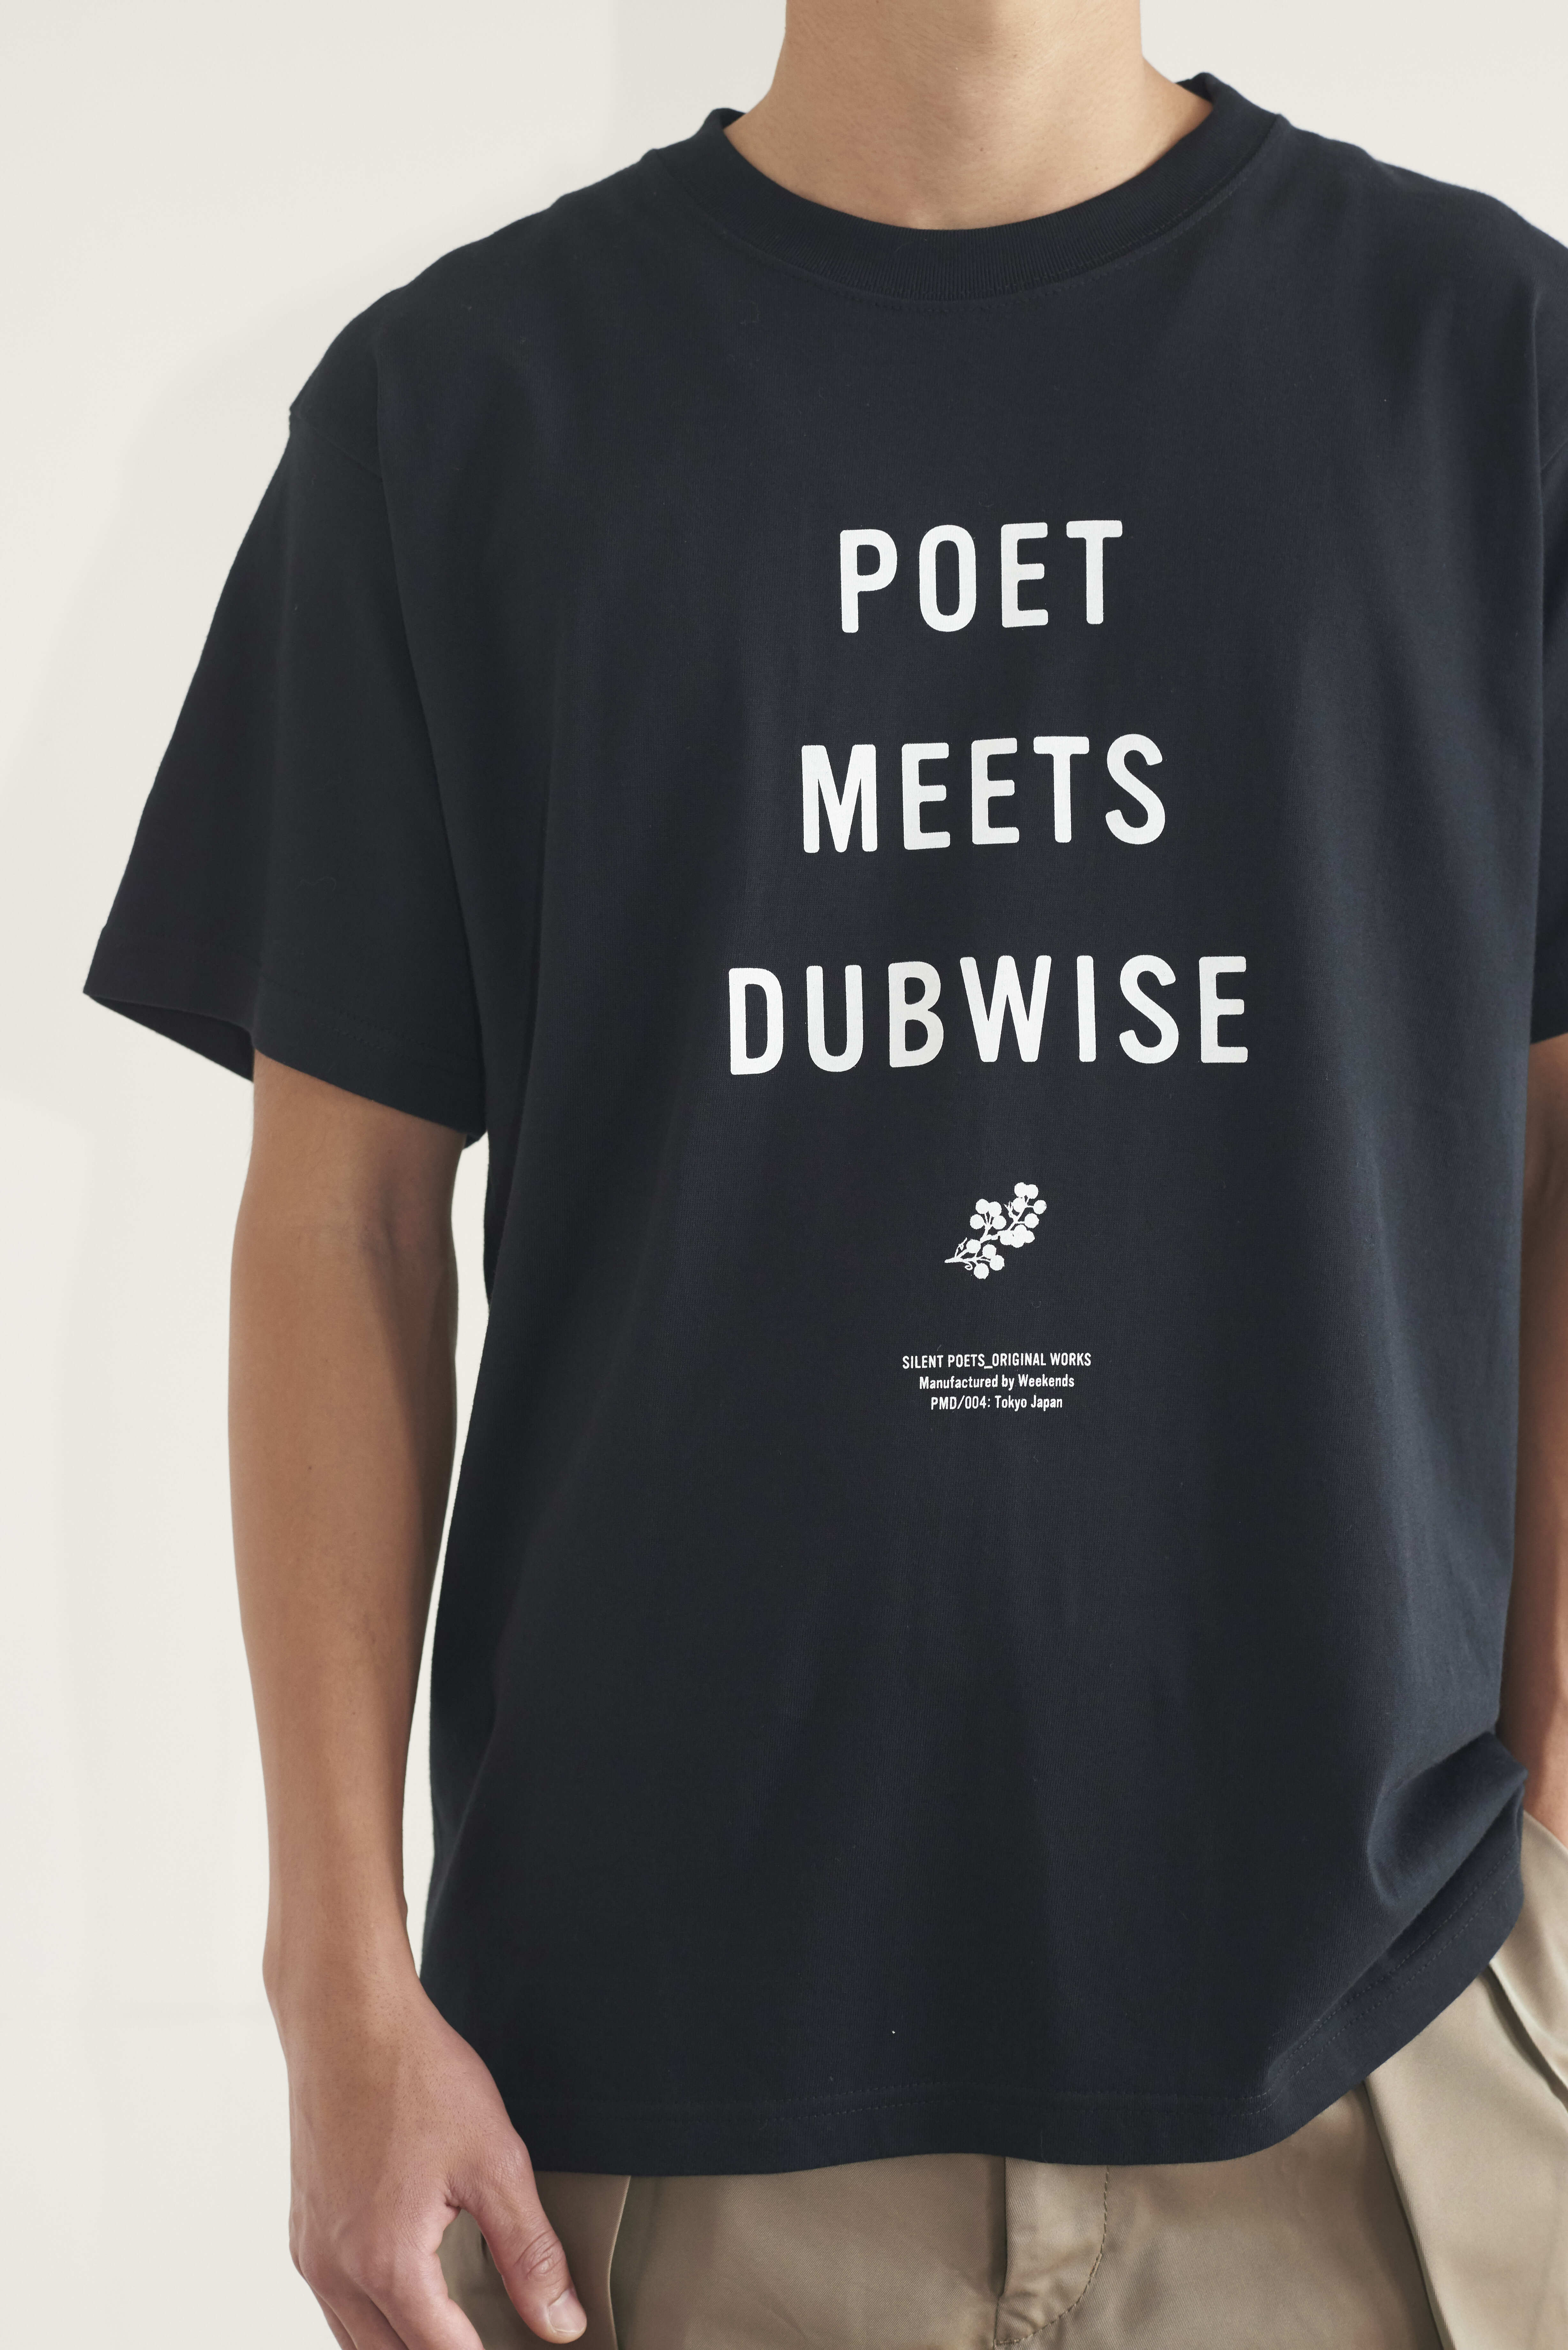 POET MEETS DUBWISE NEW PMD T-shirt